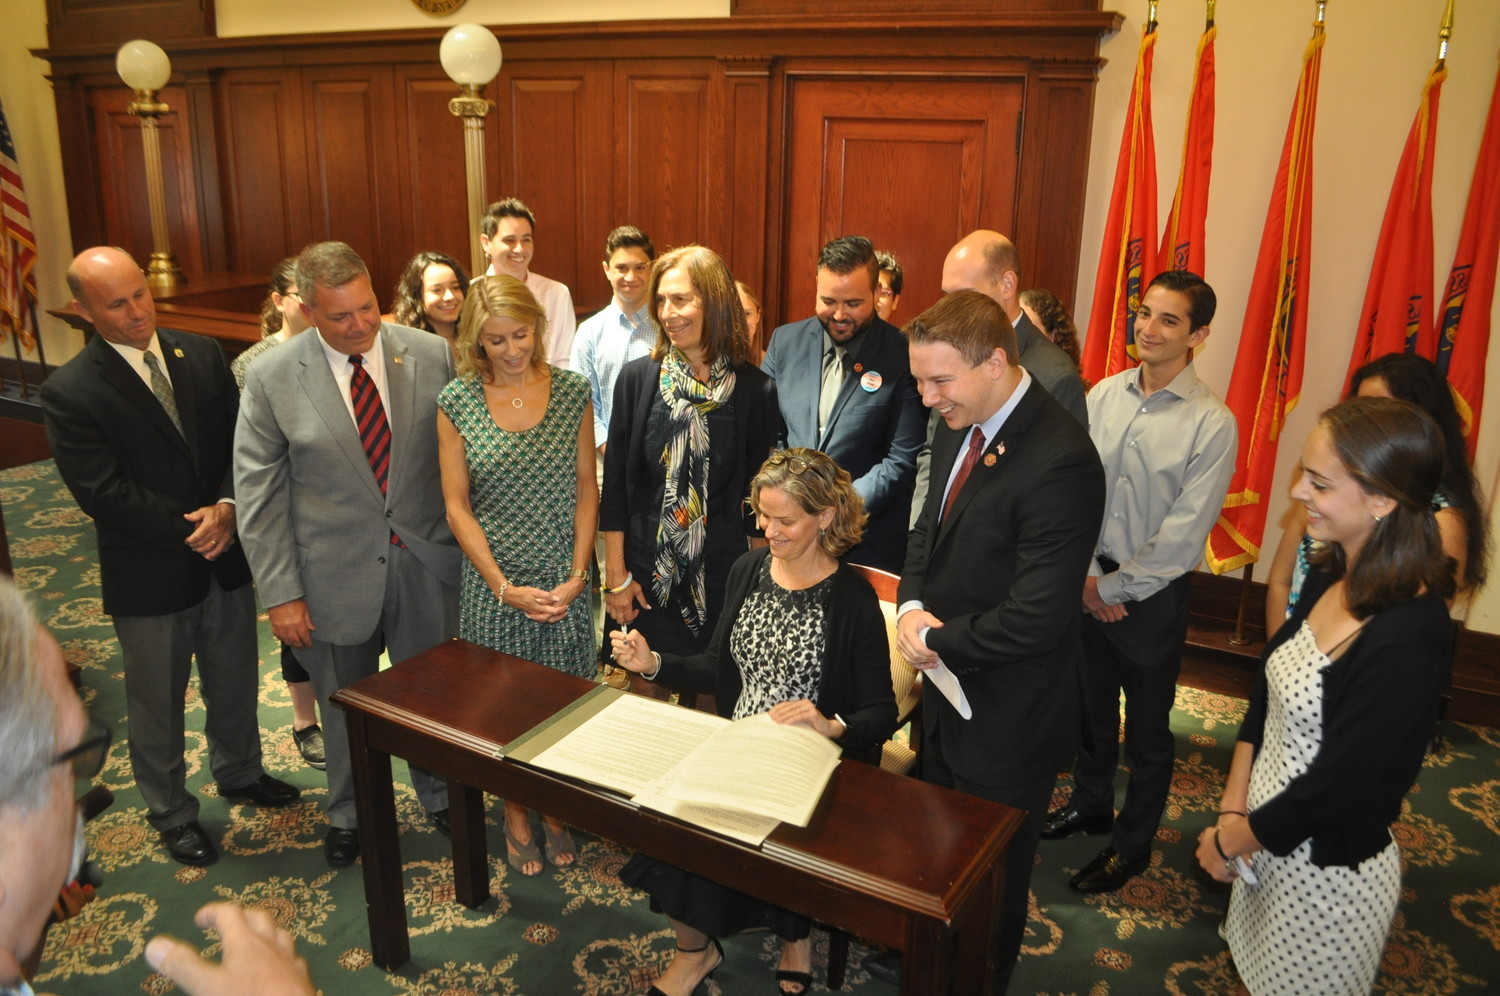 County Executive Laura Curran signed an anti-bullying bill authored by Legislator Josh Lafazan, to her left, surrounded by students and stakeholder organizations.